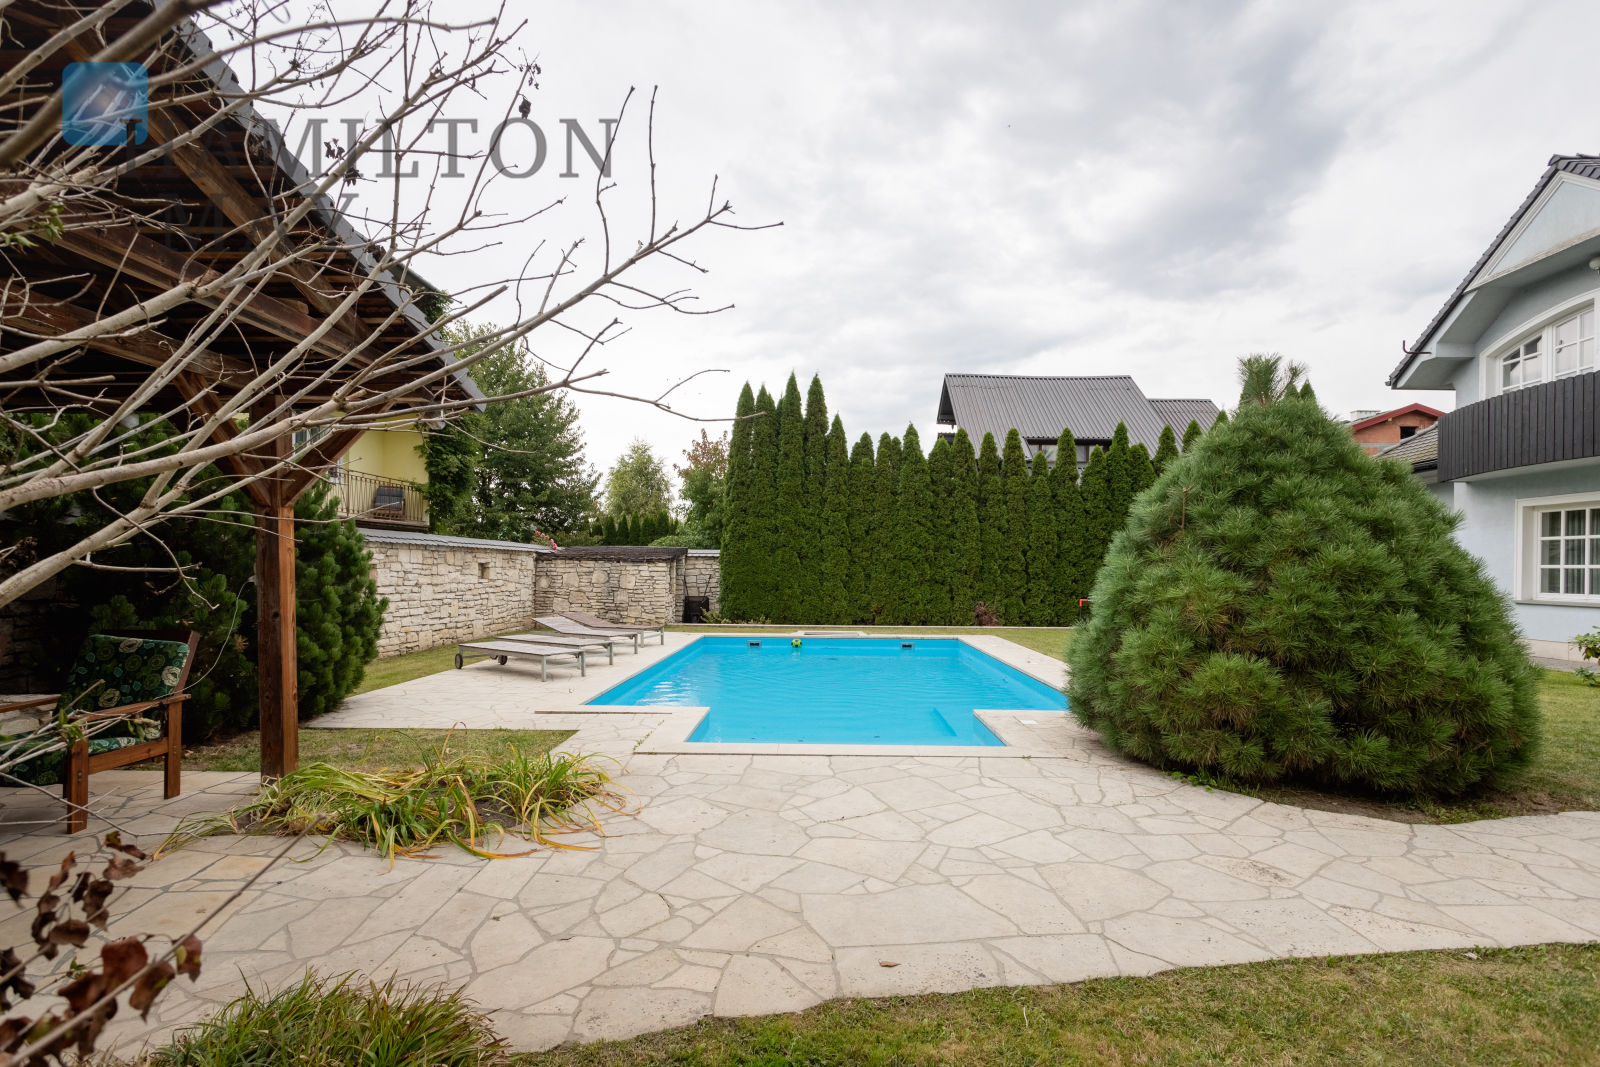 For sale a spacious detached house with a swimming pool, on a quiet plot in Zielonki Krakow for sale